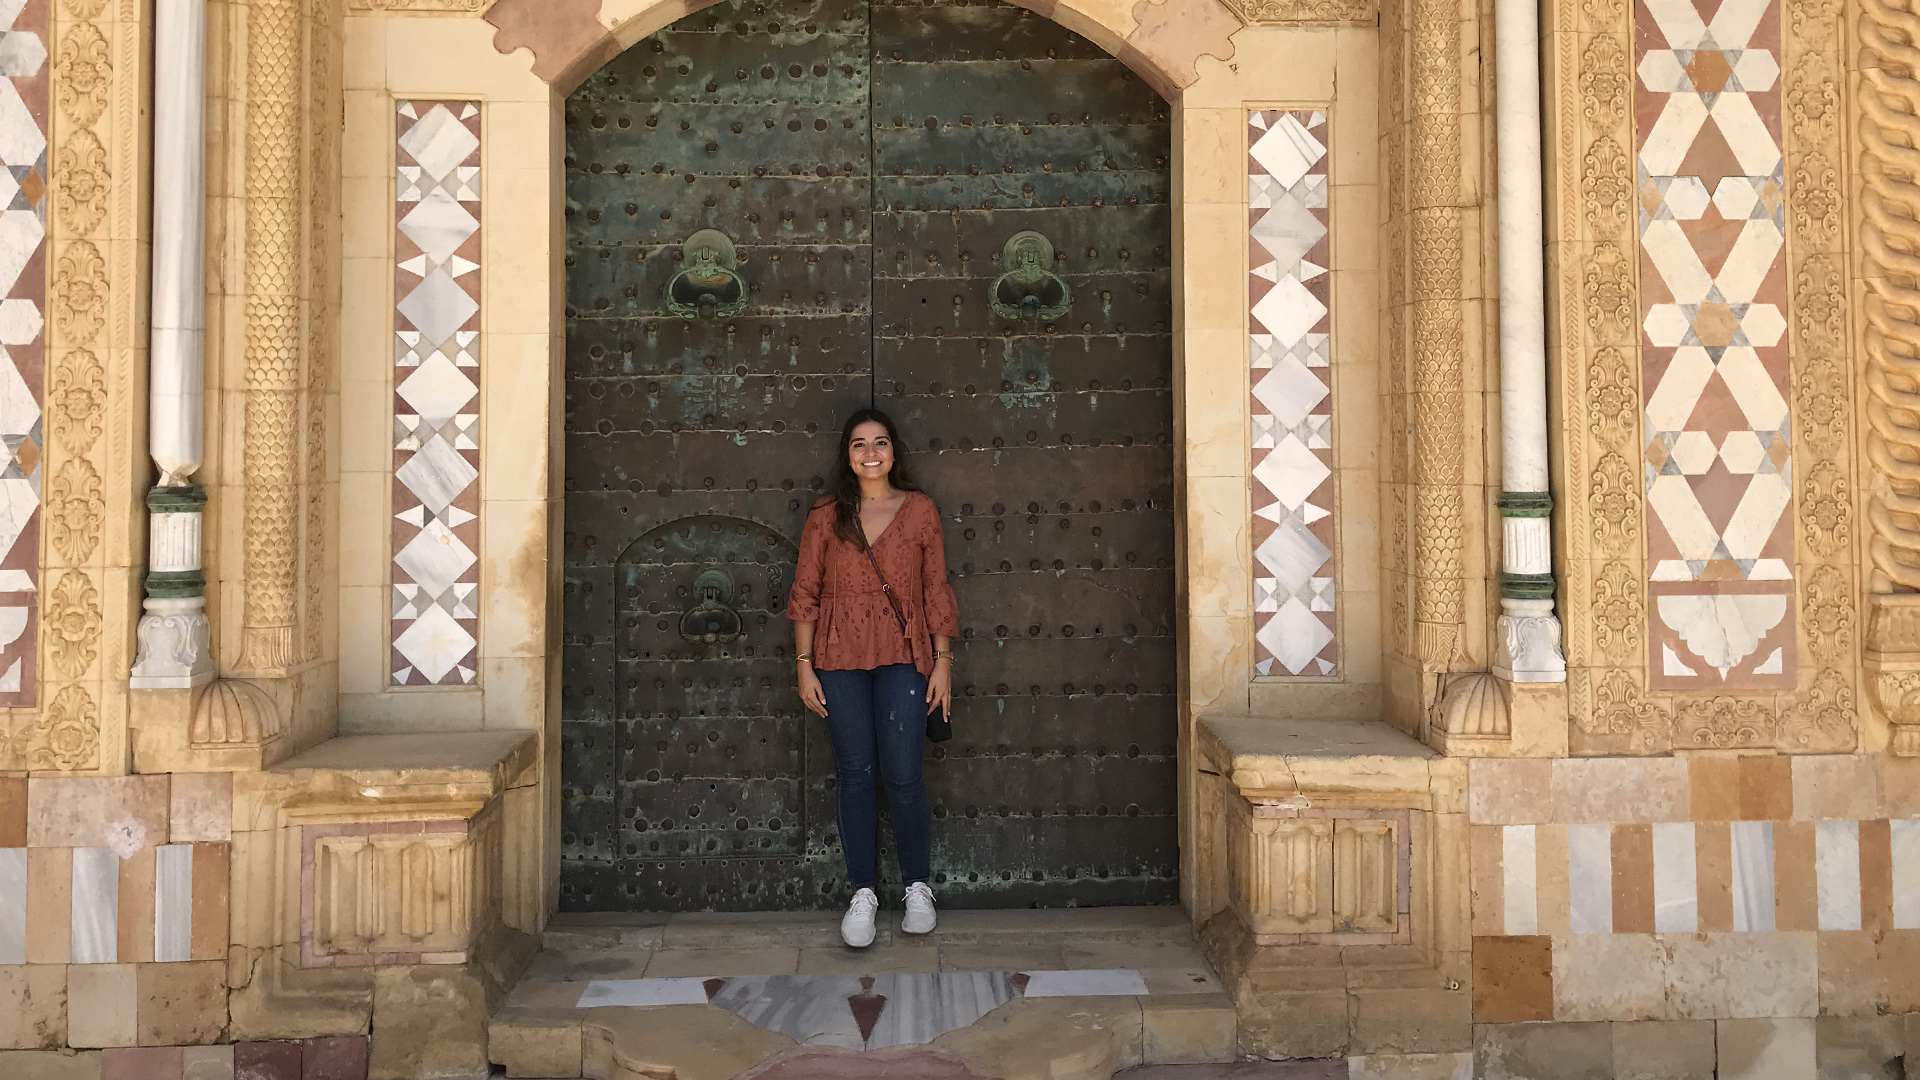 Hannah Chaya stands in front of an elaborate doorway.